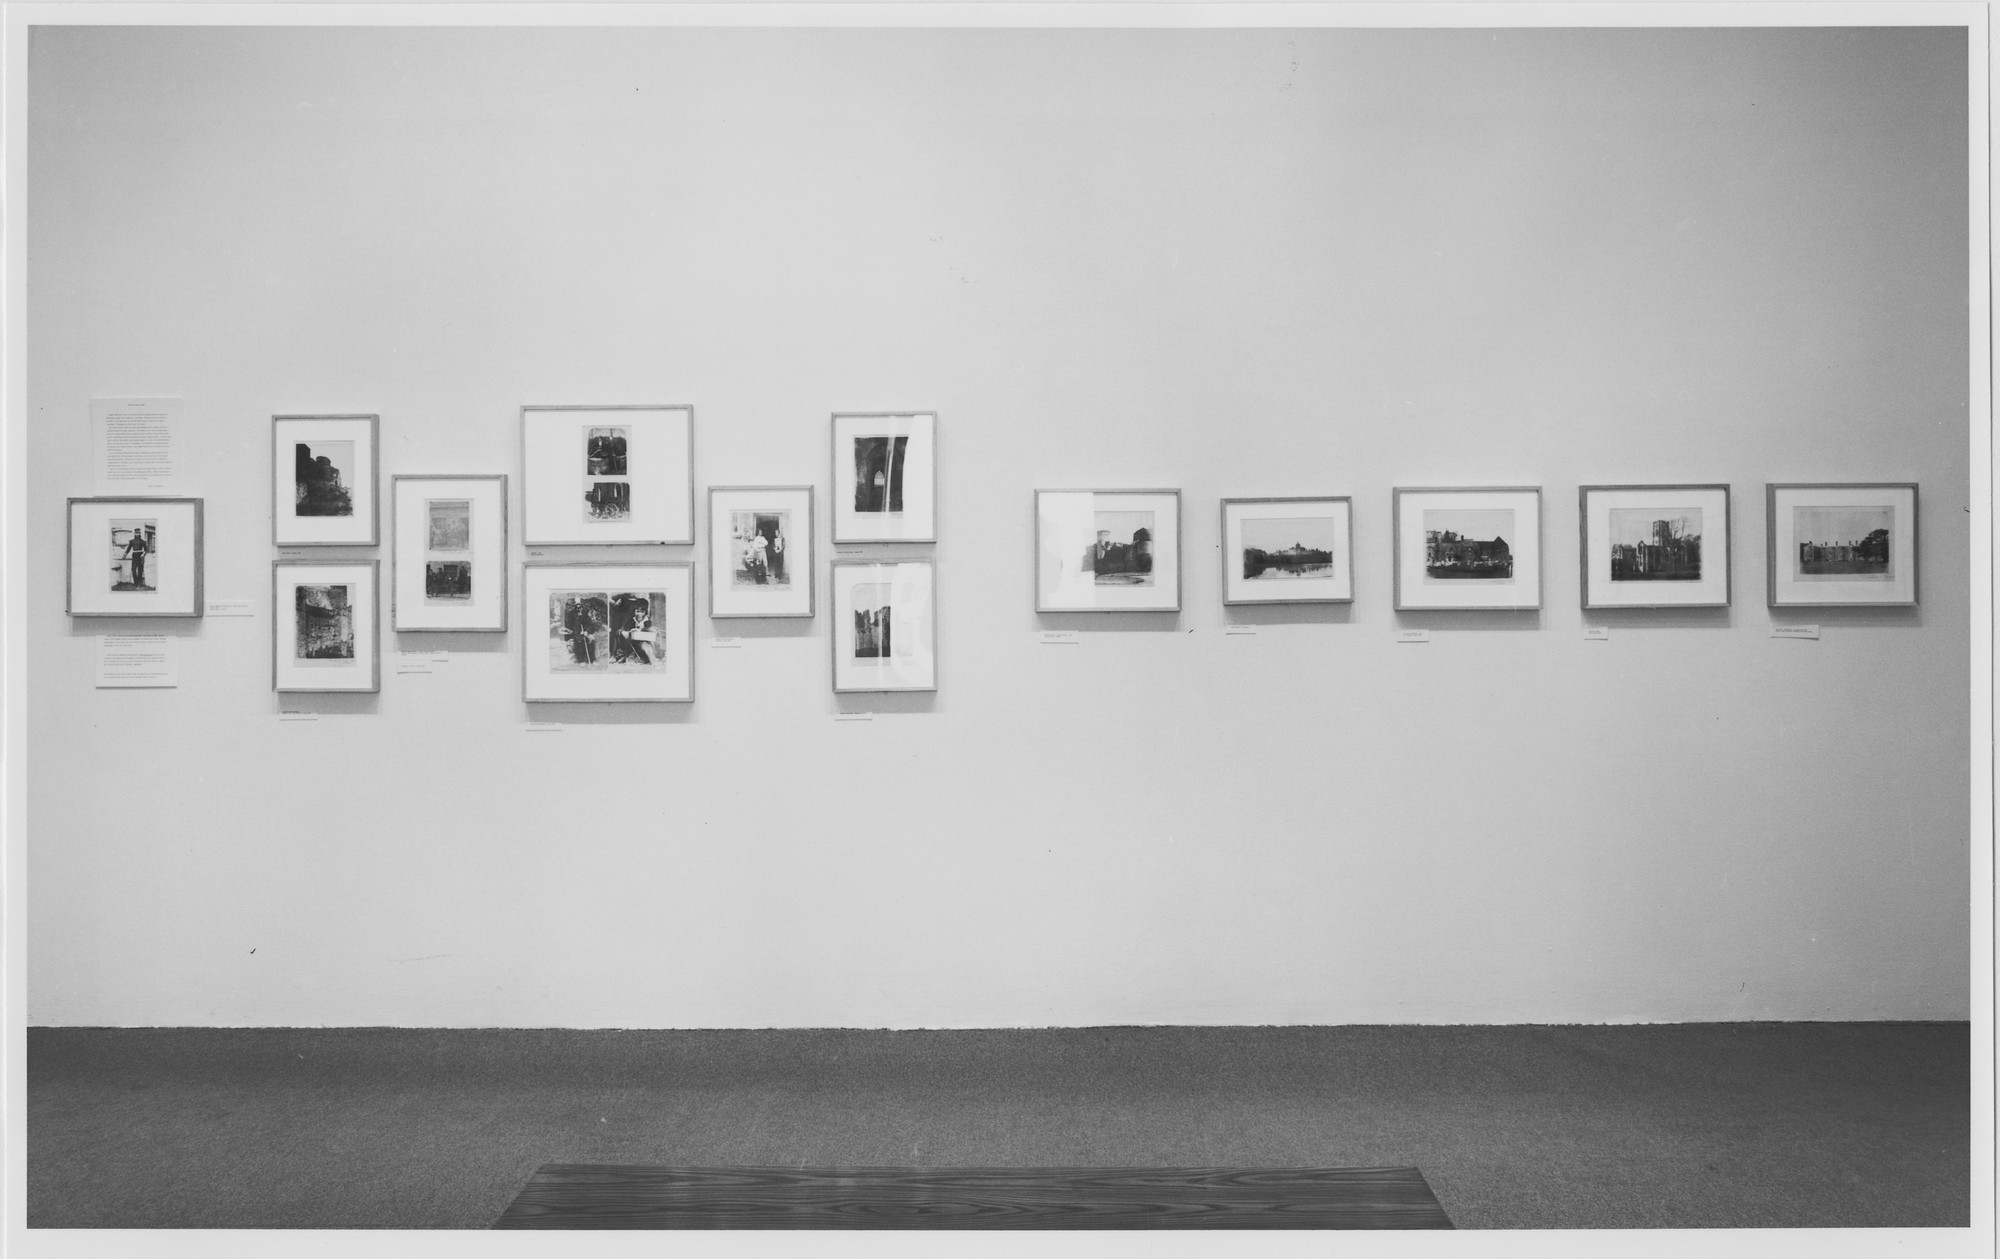 "Installation view of the exhibition, ""Alfred Capel Cure"" April 3, 1981–June 28, 1981. Photographic Archive. The Museum of Modern Art Archives, New York. IN1306.1. Photograph by Mali Olatunji."